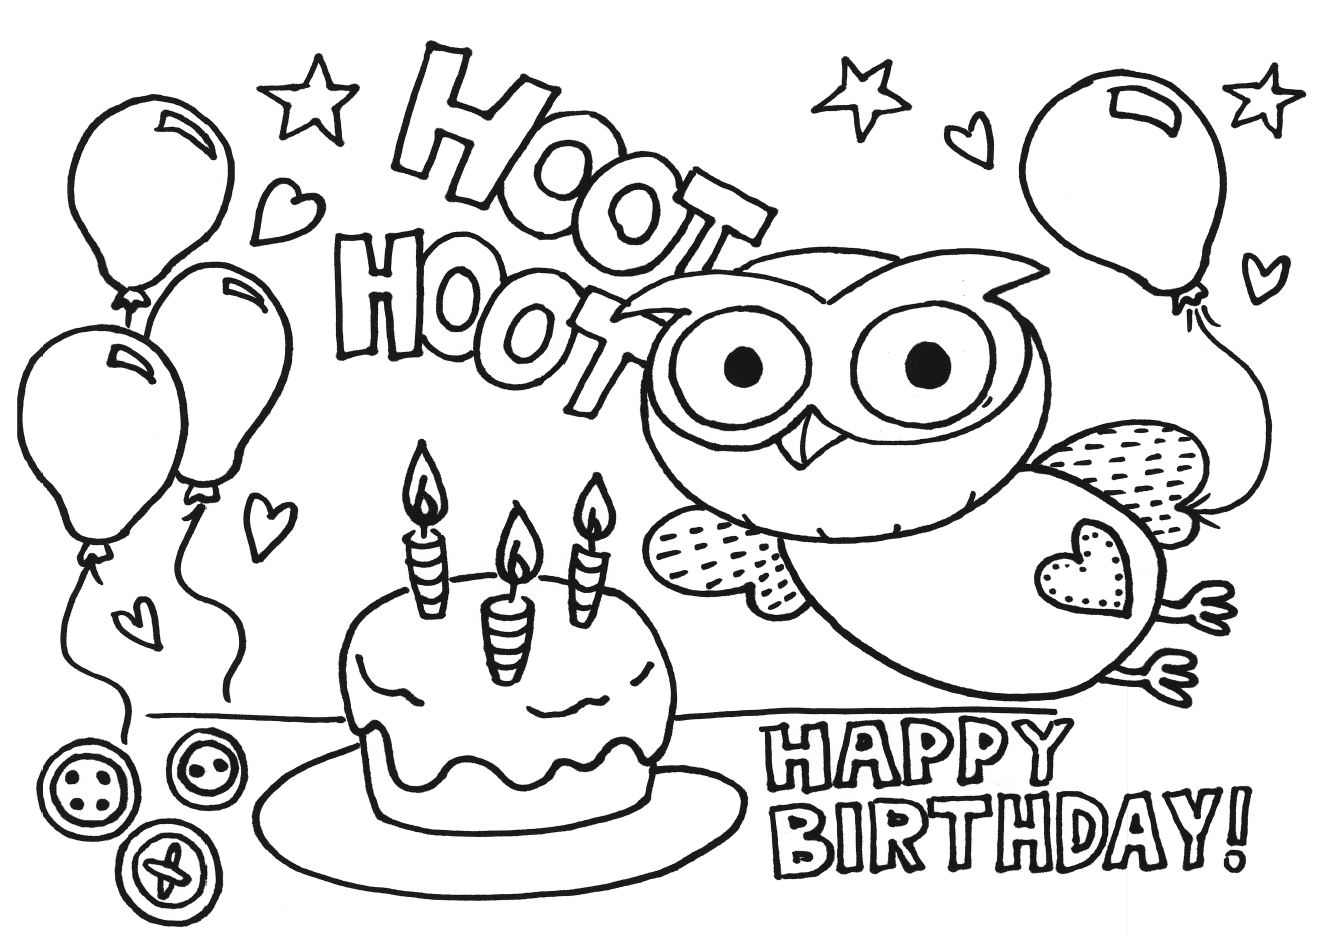 birthday themed coloring pages ; 0068ed963e42c0989a7104533303f062